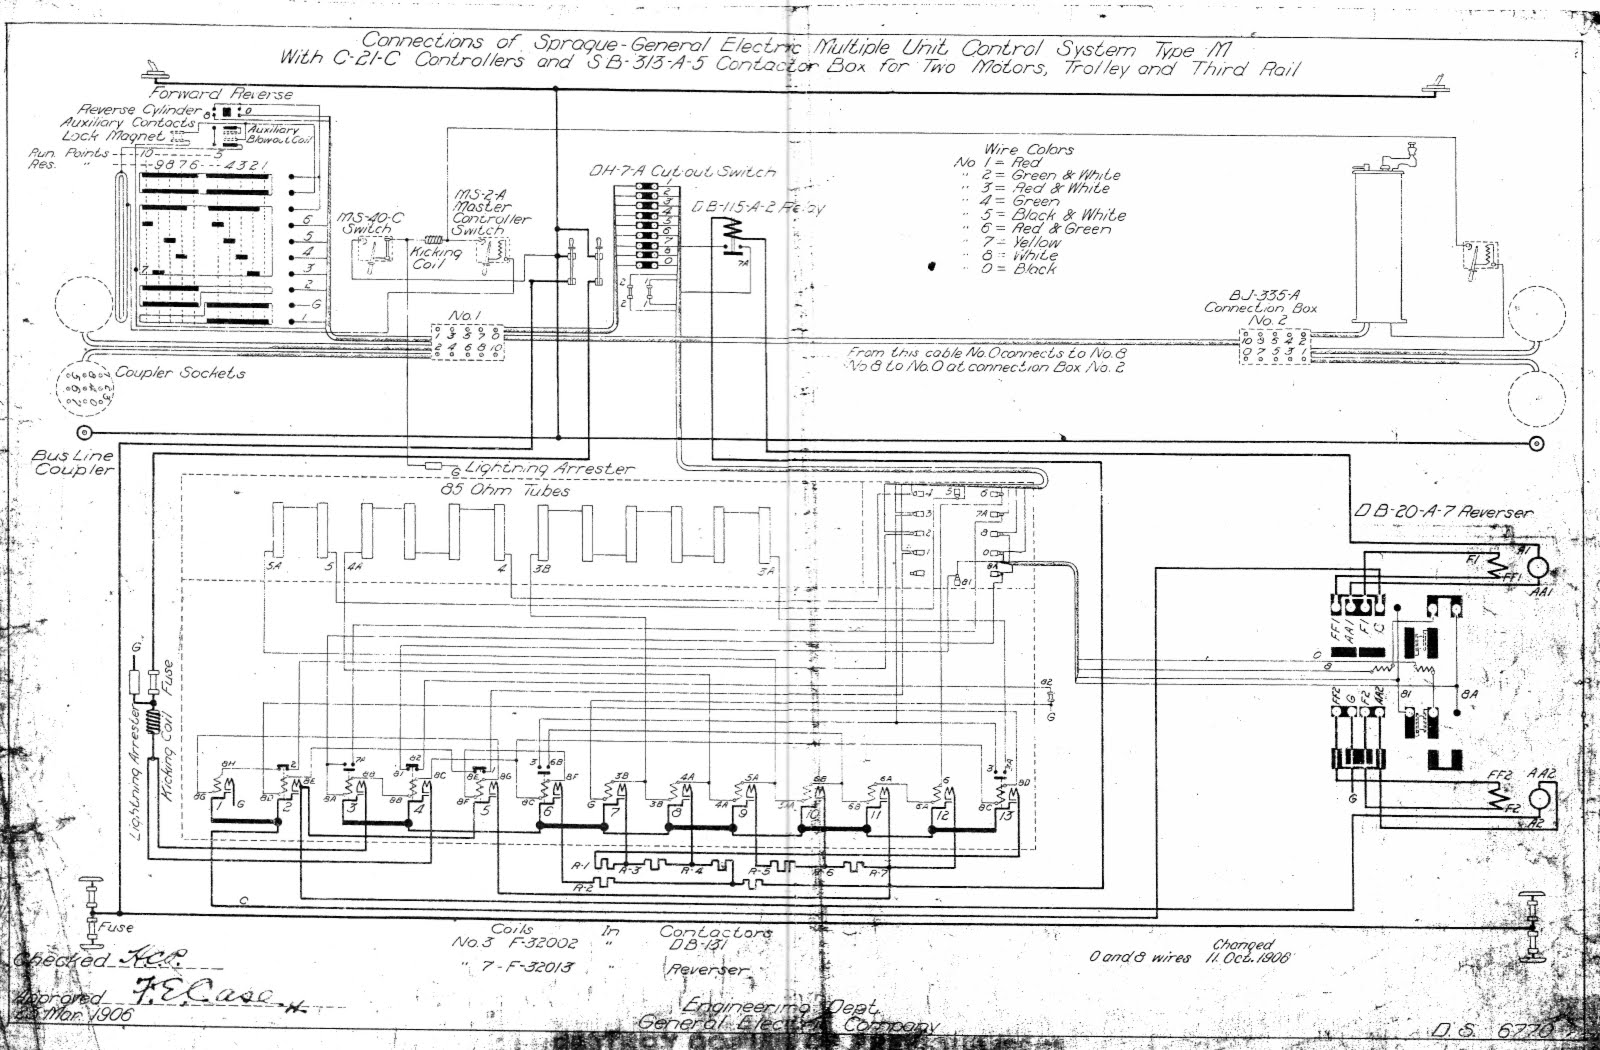 Electrical Drawing Circuit Diagrams Tata Car Manuals Wiring Pdf Fault Codes Download Nano Diagram